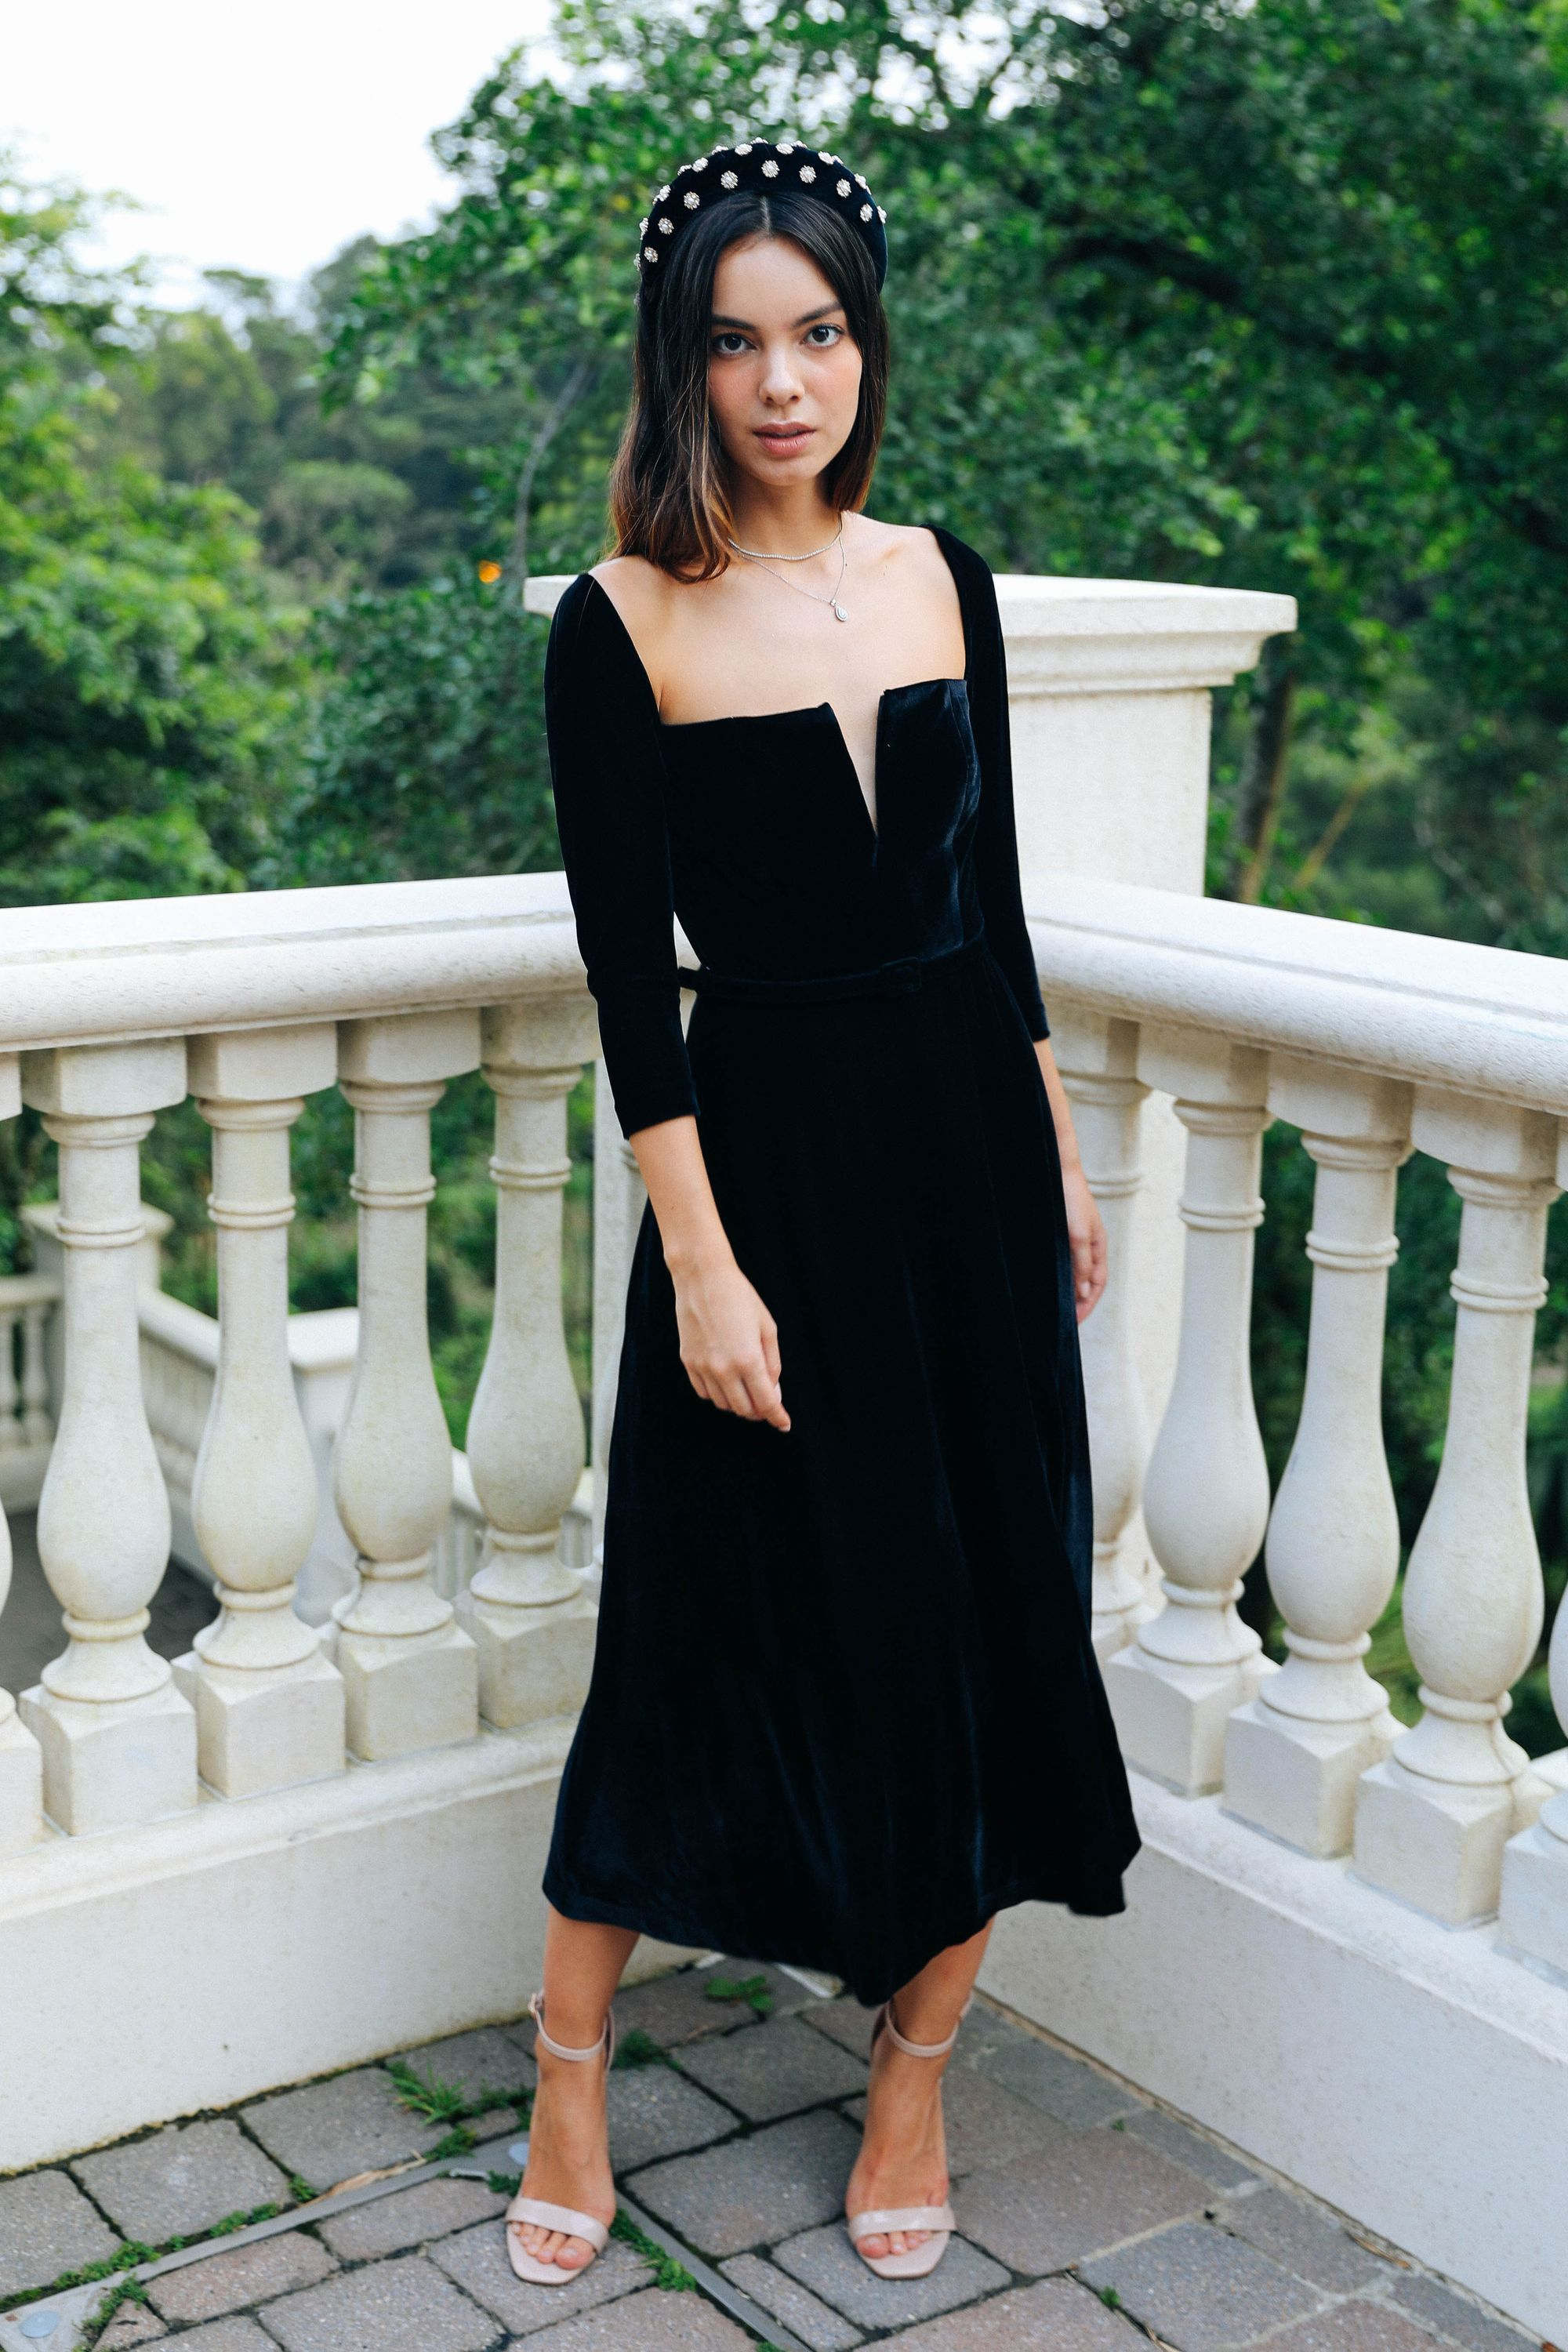 Black Velvet Cocktail Dress With Long Sleeves For Winter Wedding Guest Look Winter Cocktail Dress Velvet Cocktail Dress Cocktail Dress Classy [ 3000 x 2000 Pixel ]